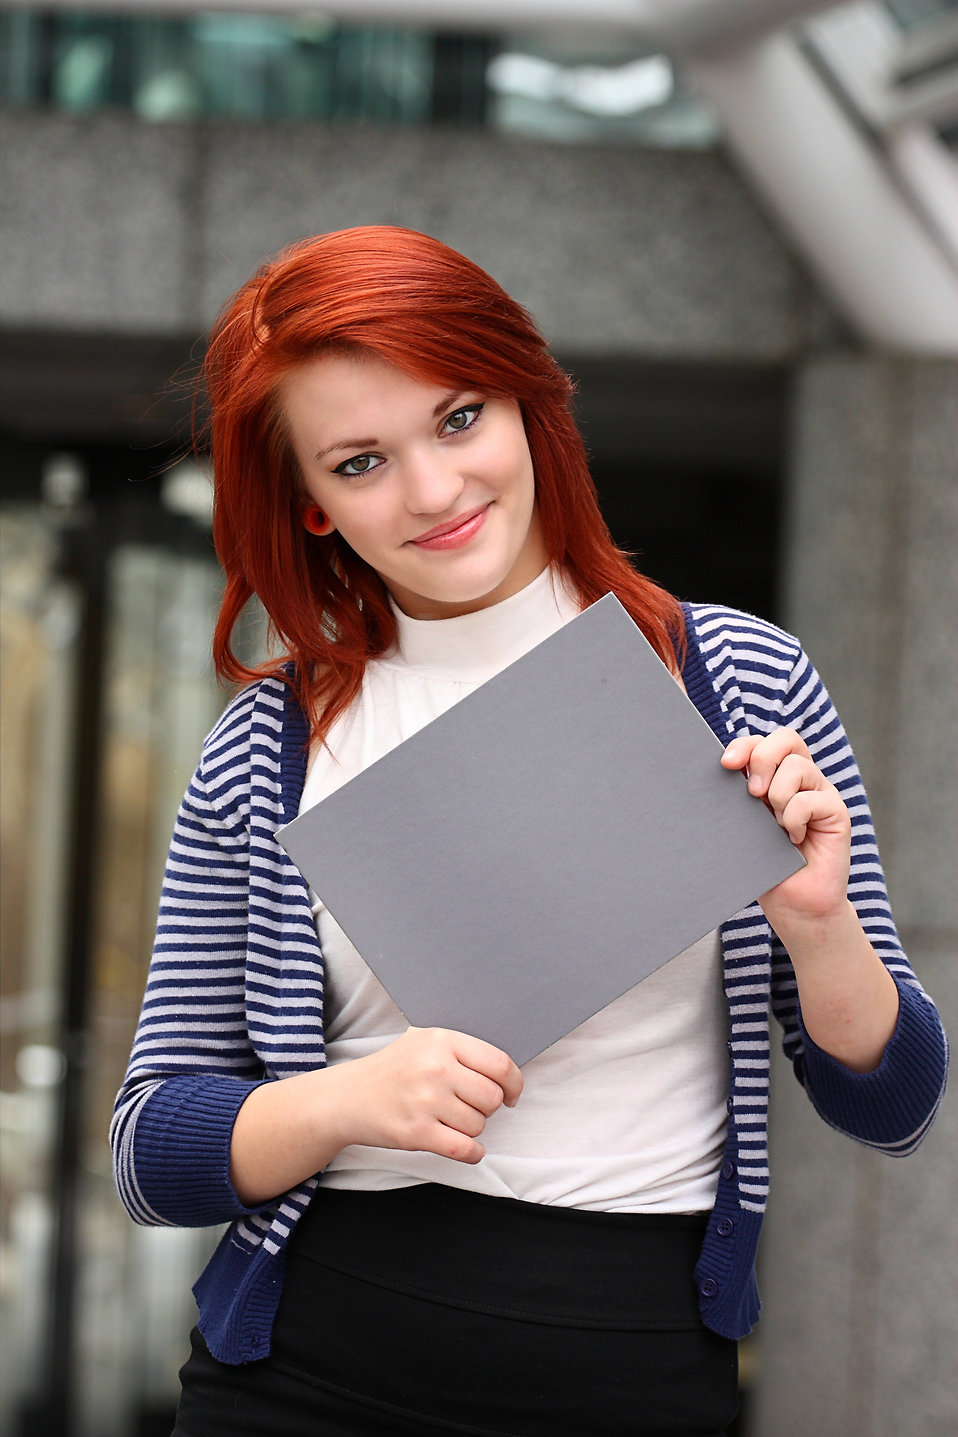 A beautiful young woman holding a blank card : Free Stock Photo